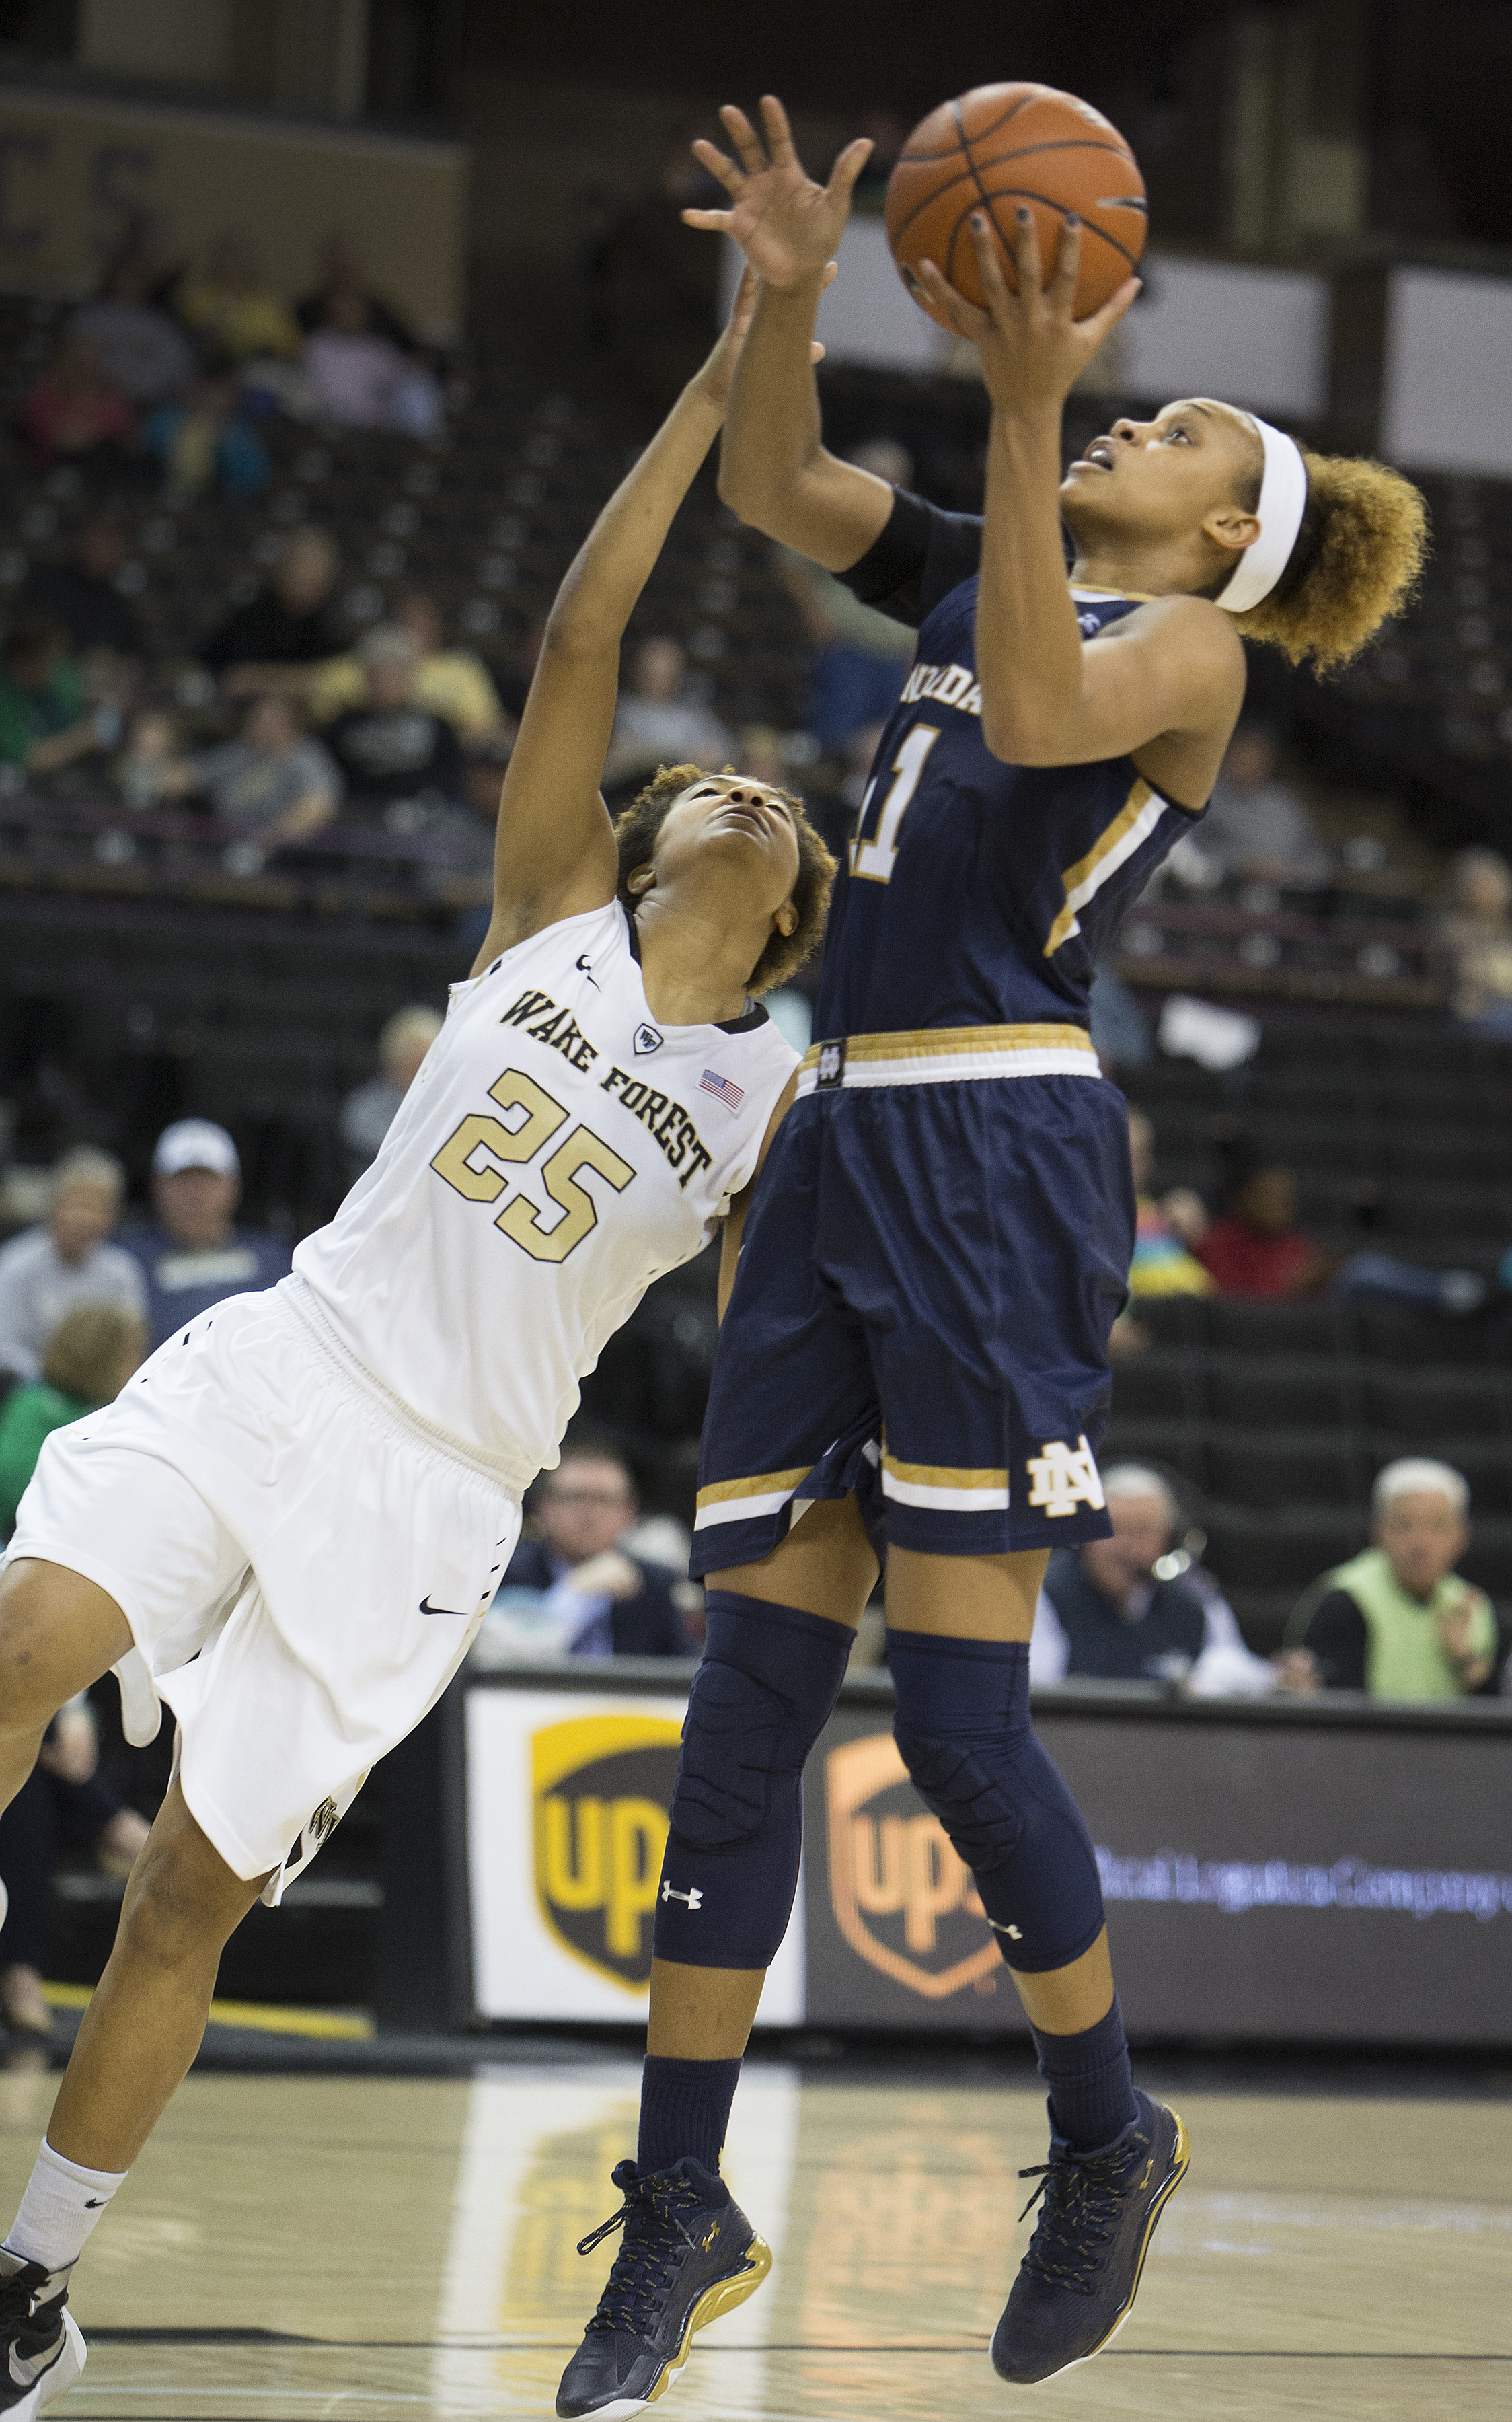 Notre Dame's Brianna Turner (11) shoots with Wake Forest's Ariel Stephenson (25) falling away in the second half of an NCAA college basketball game Thursday, Feb. 18, 2016, in Winston-Salem, N.C. Notre Dame wins 86-52. (AP Photo/Lynn Hey)